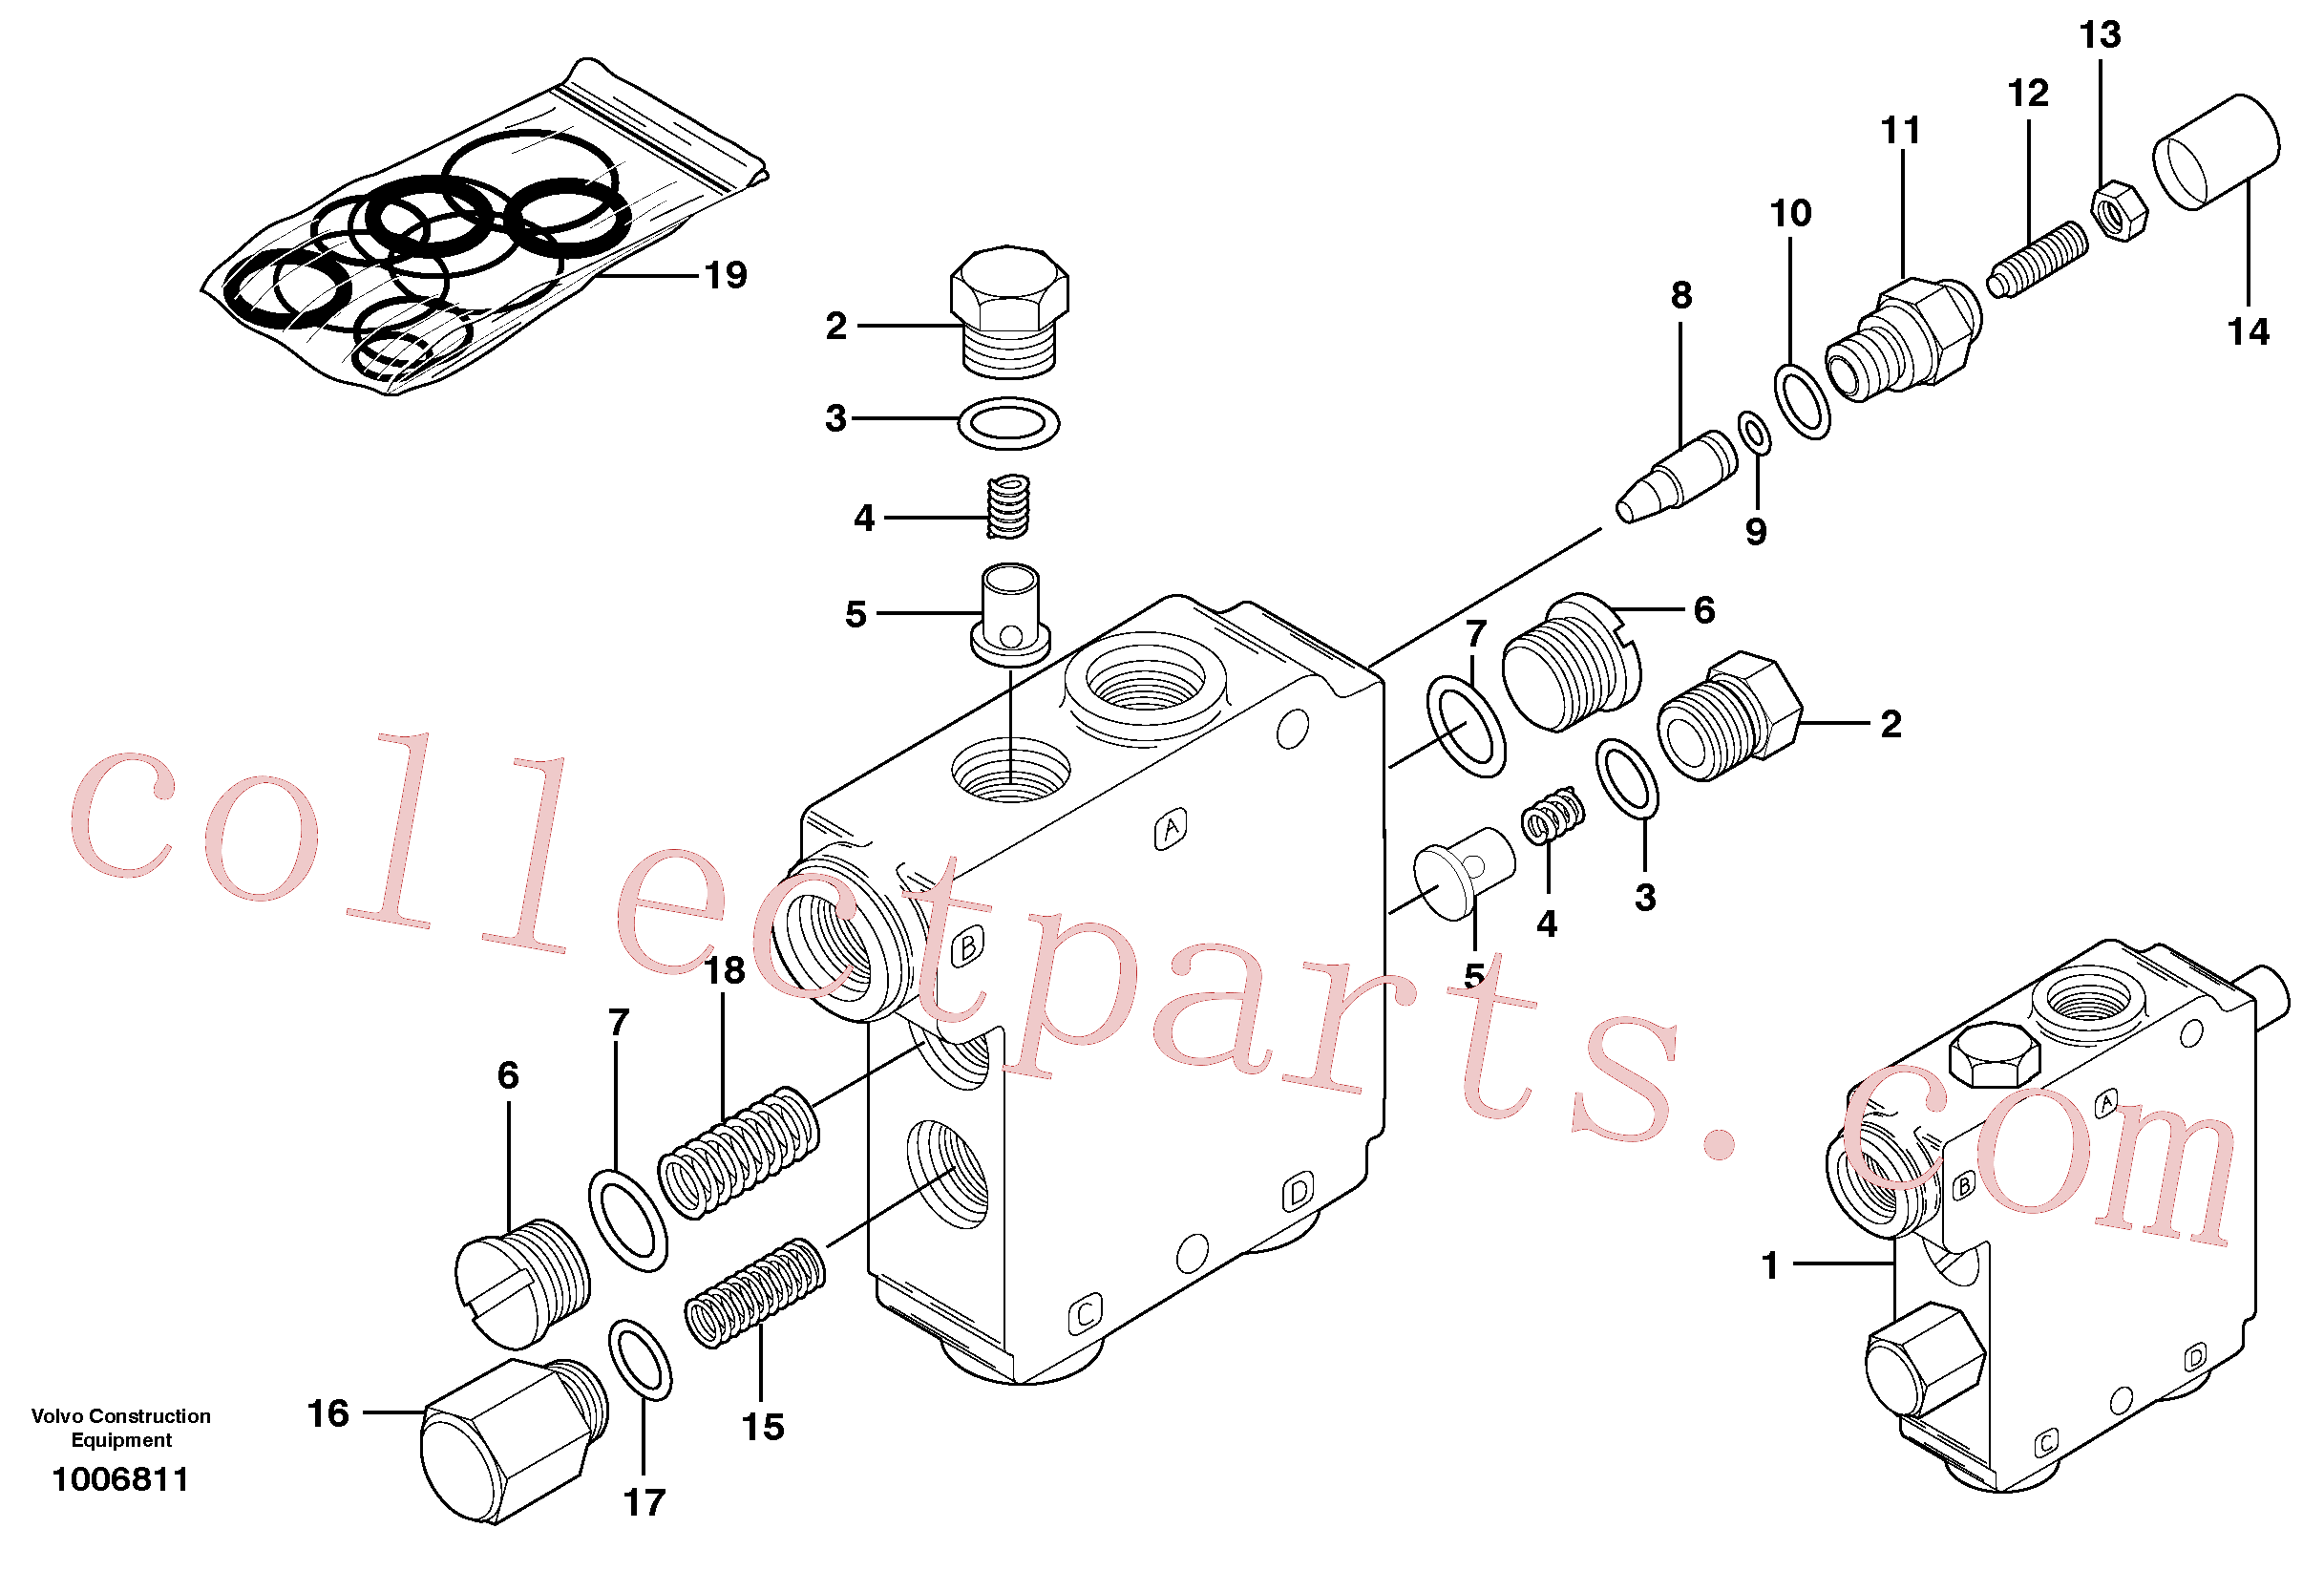 VOE11710622 for Volvo Self level valve (optional) (eaton valve part number 39055-day), Level self compensating valve(1006811 assembly)